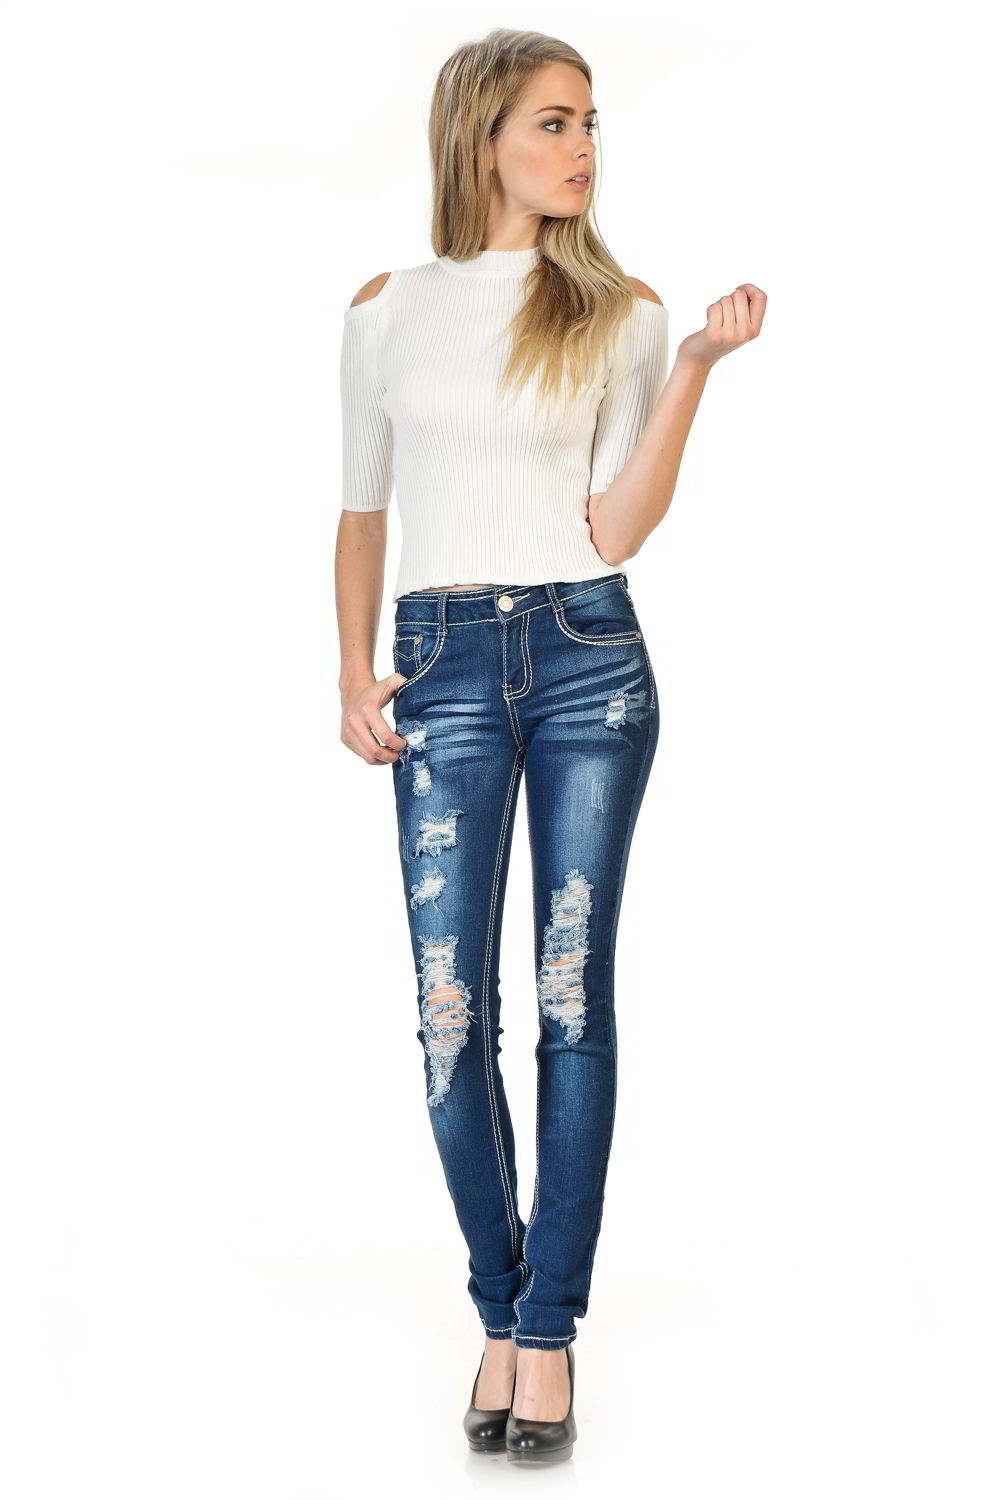 Sweet Look Premium Women's Jeans